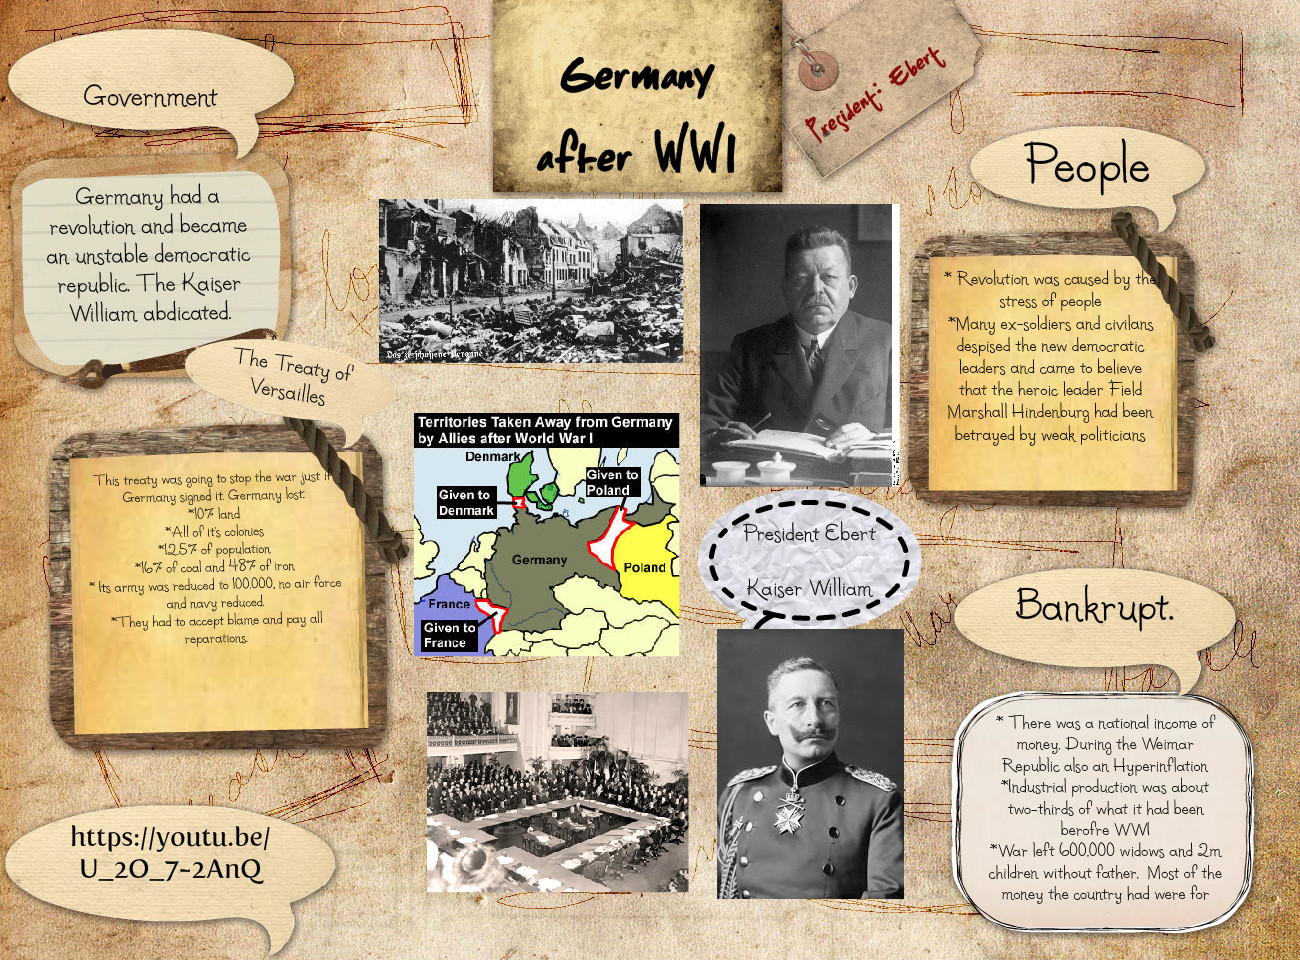 Germany after WWI